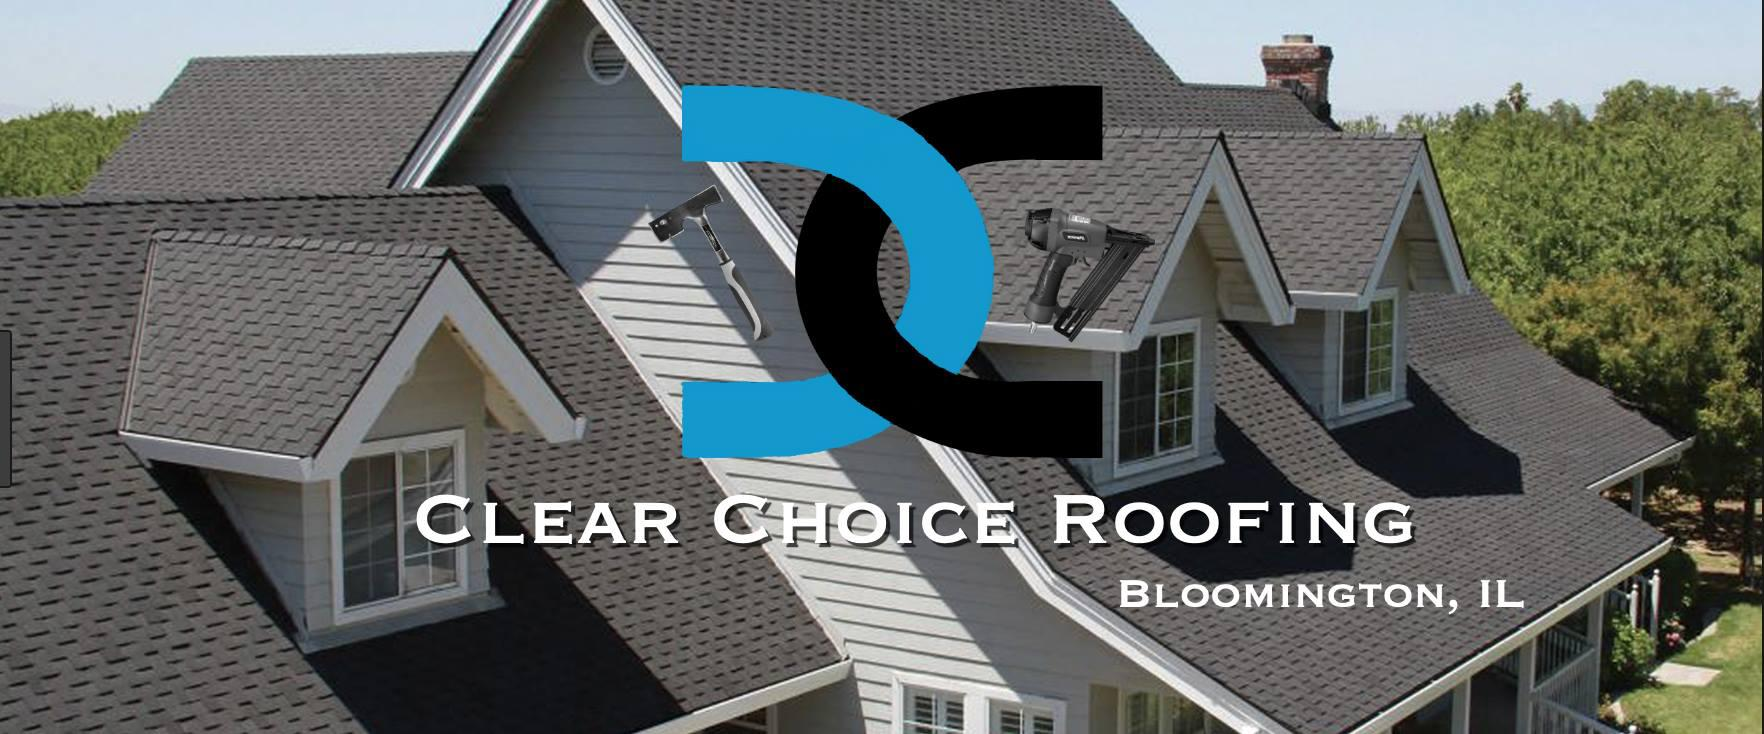 Clear Choice Roofing image 0